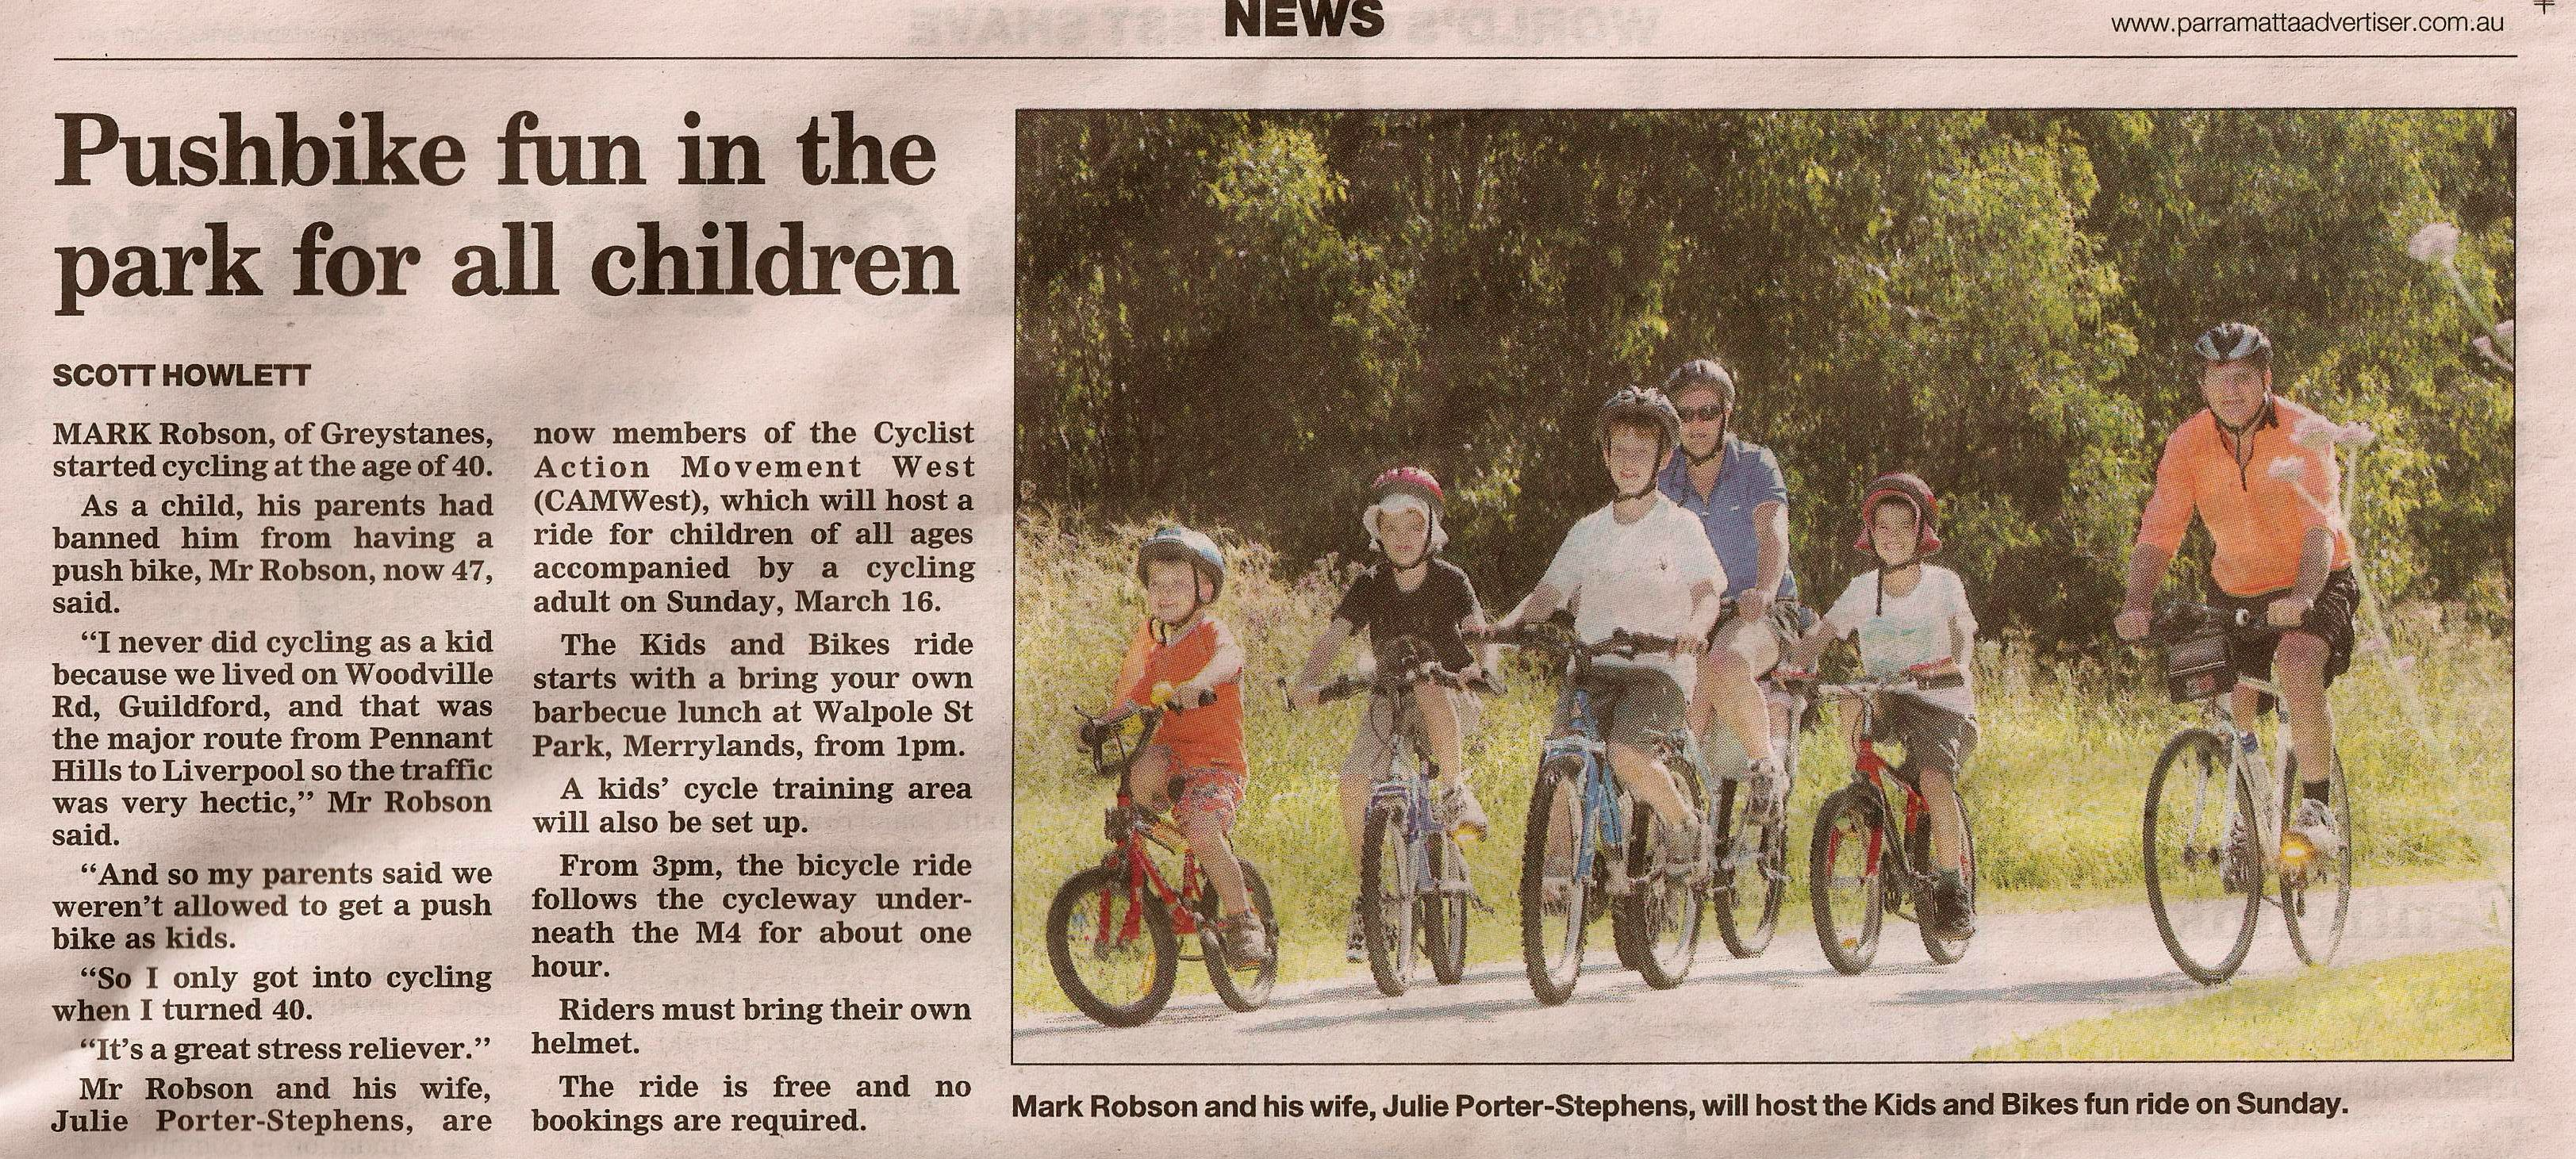 Ride Advertised On Page 7 Of 12 March Parramatta Advertiser With Story And Photo